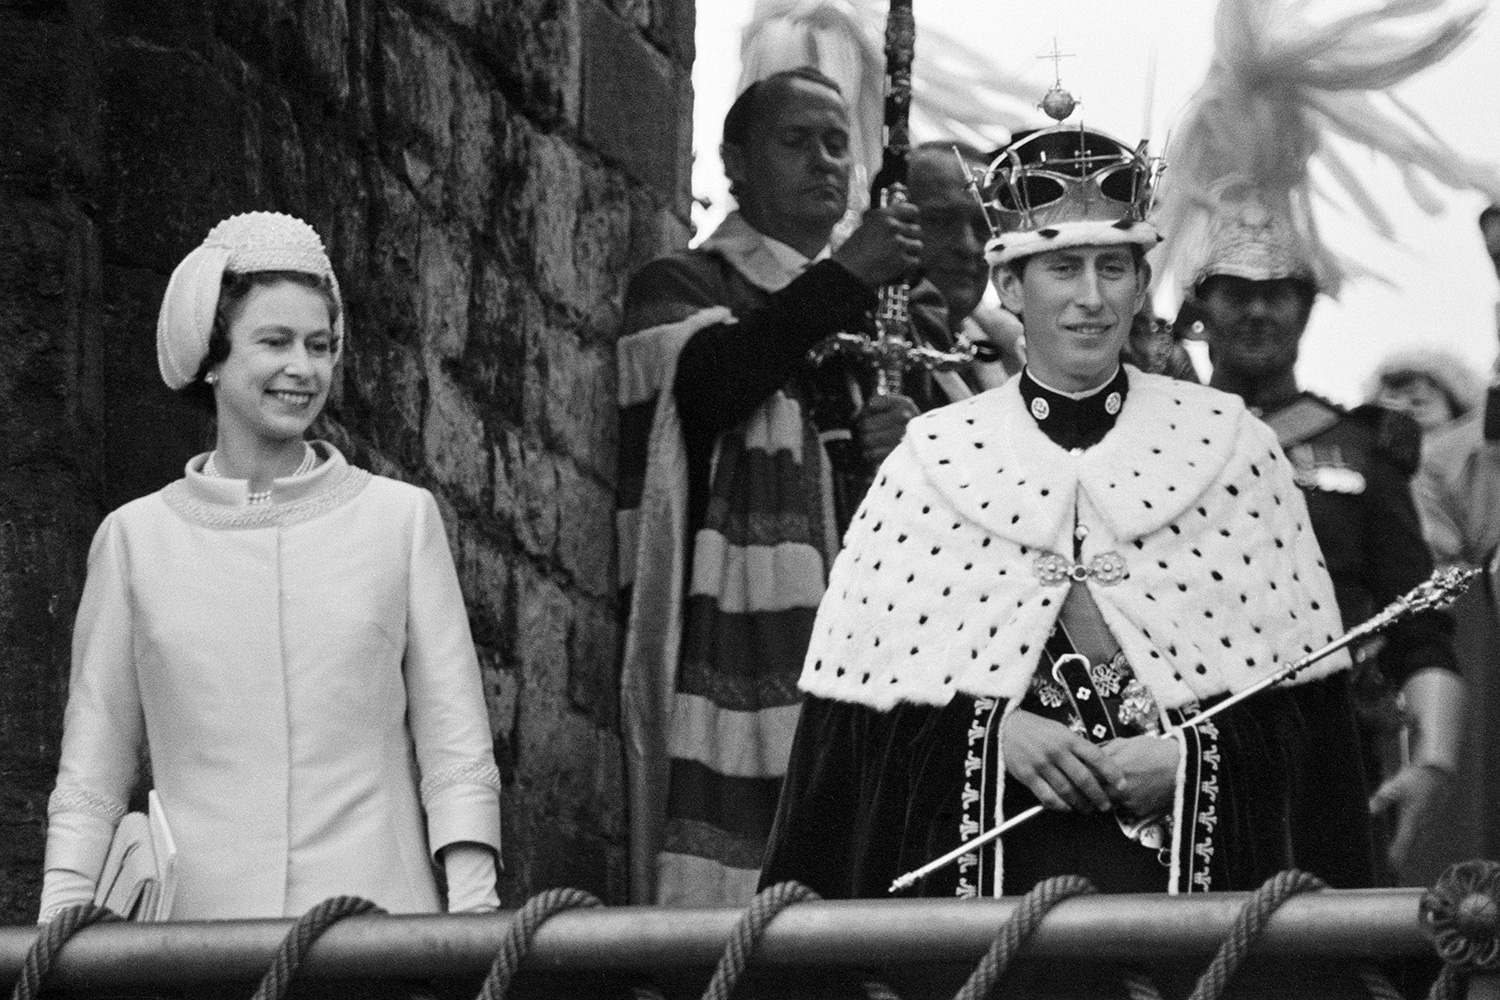 The Investiture of Prince Charles at Caernarfon Castle, Caernarfon, Wales, Pictured, Prince Charles, newly installed as Prince of Wales, is presented to his people on a balcony at Queen Eleanor's Gate of Caernarfon Castle, with Queen Elizatheth II, 1st July 1969